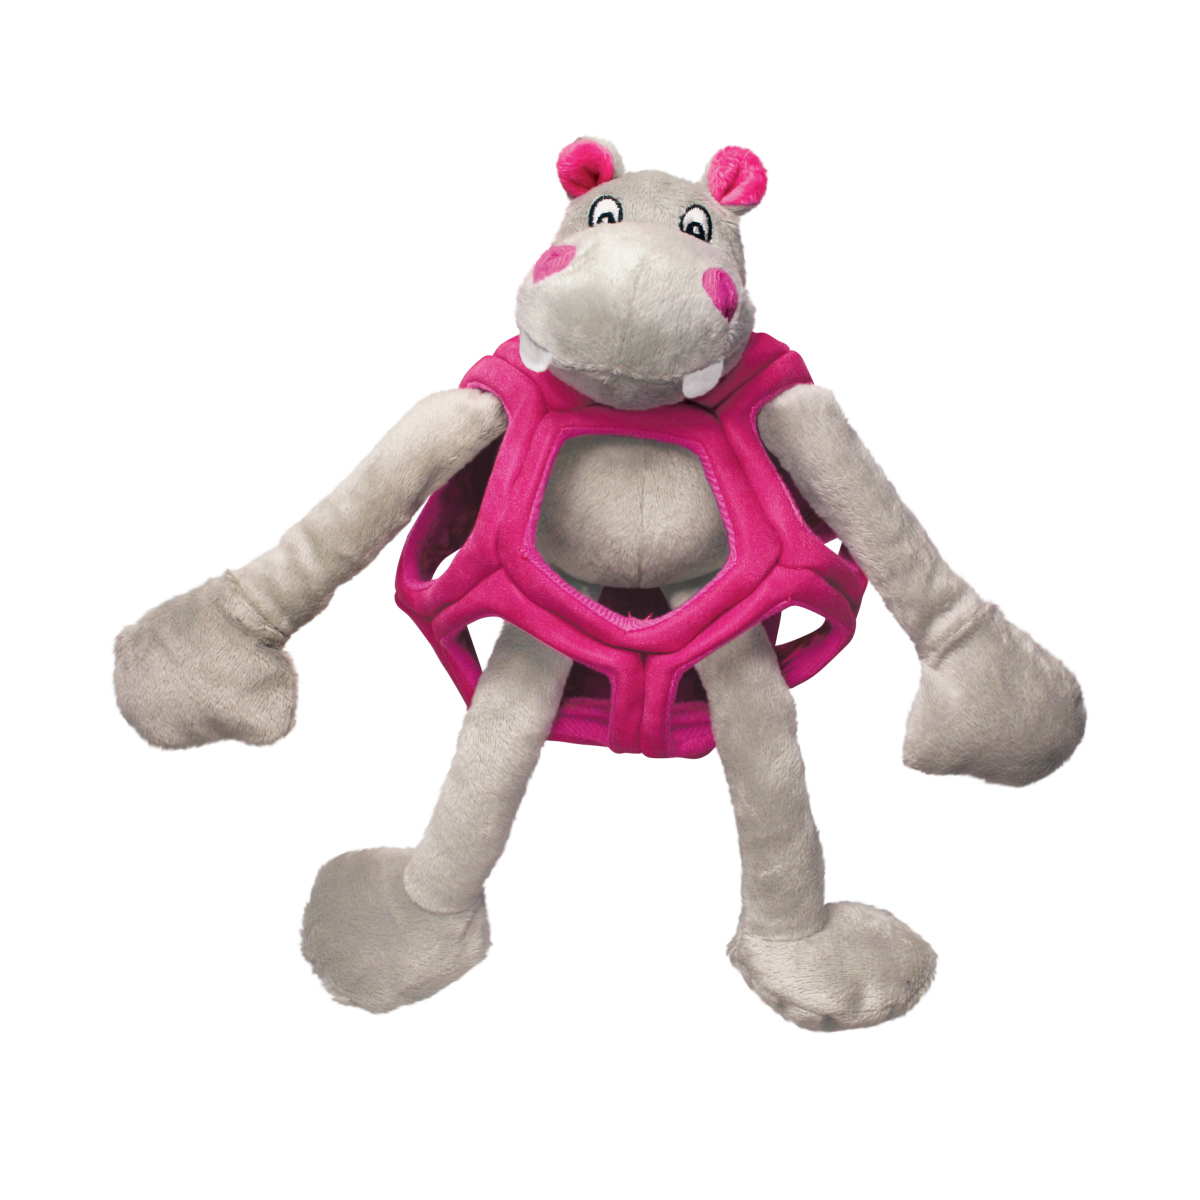 KO PUZZLEMENTS HIPPO SMALL 00001